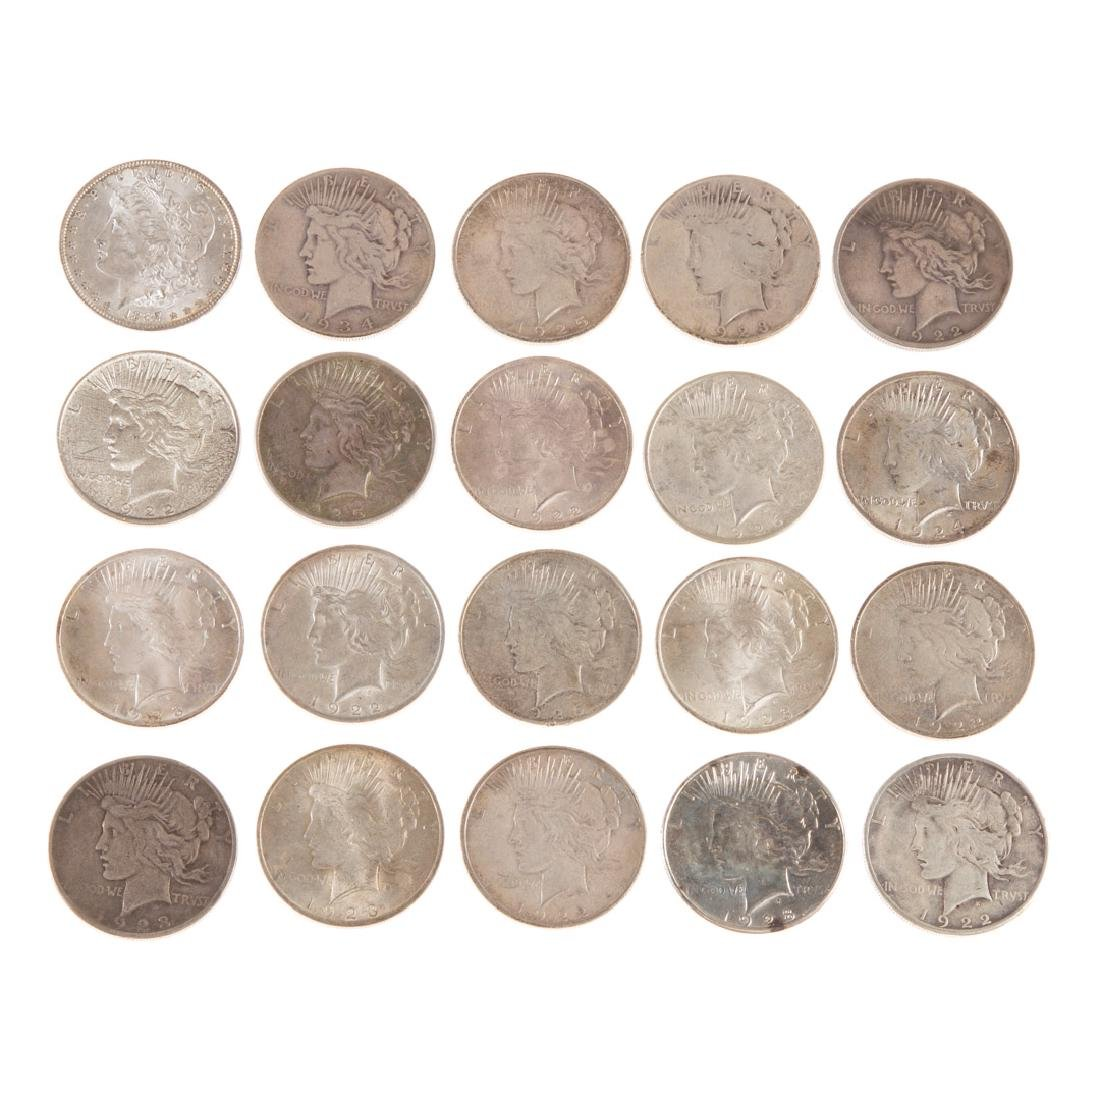 [US] 19 Peace Dollars and 1887 AU+ Morgan